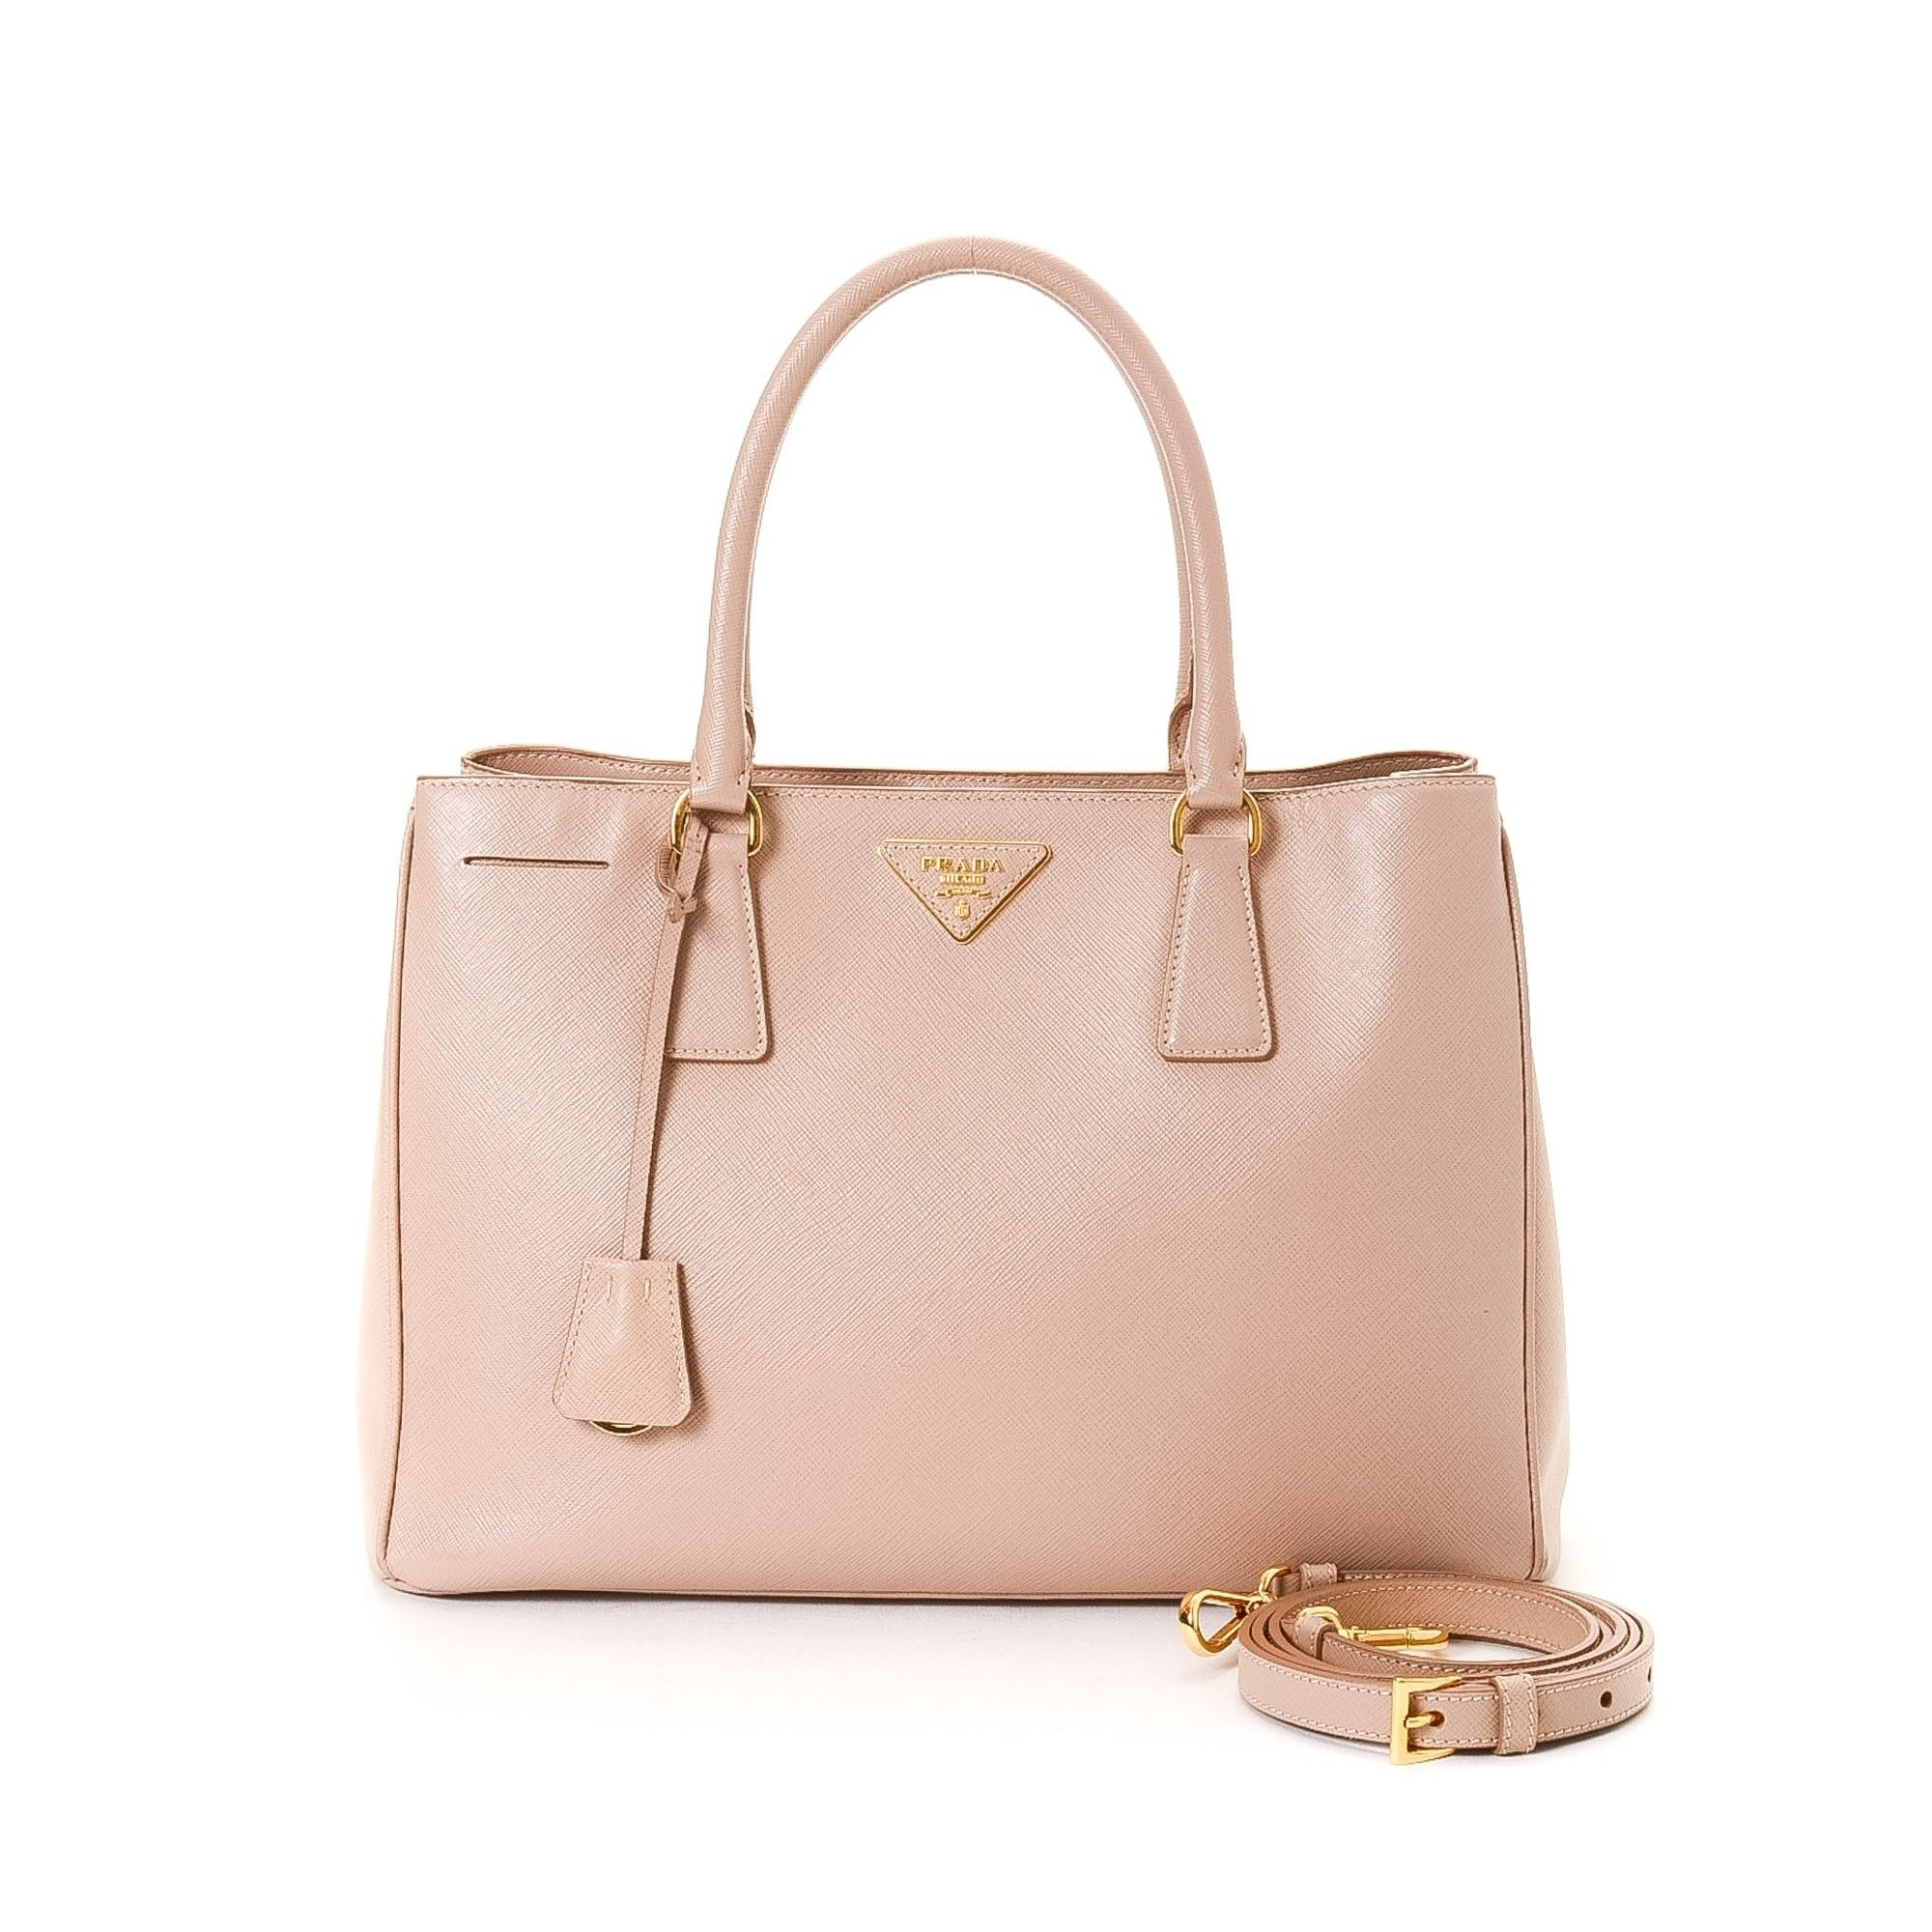 49f362c4488659 Prada Saffiano Lux Two Way Bag Pink Beige Calf Tote | Prada | Bags ...